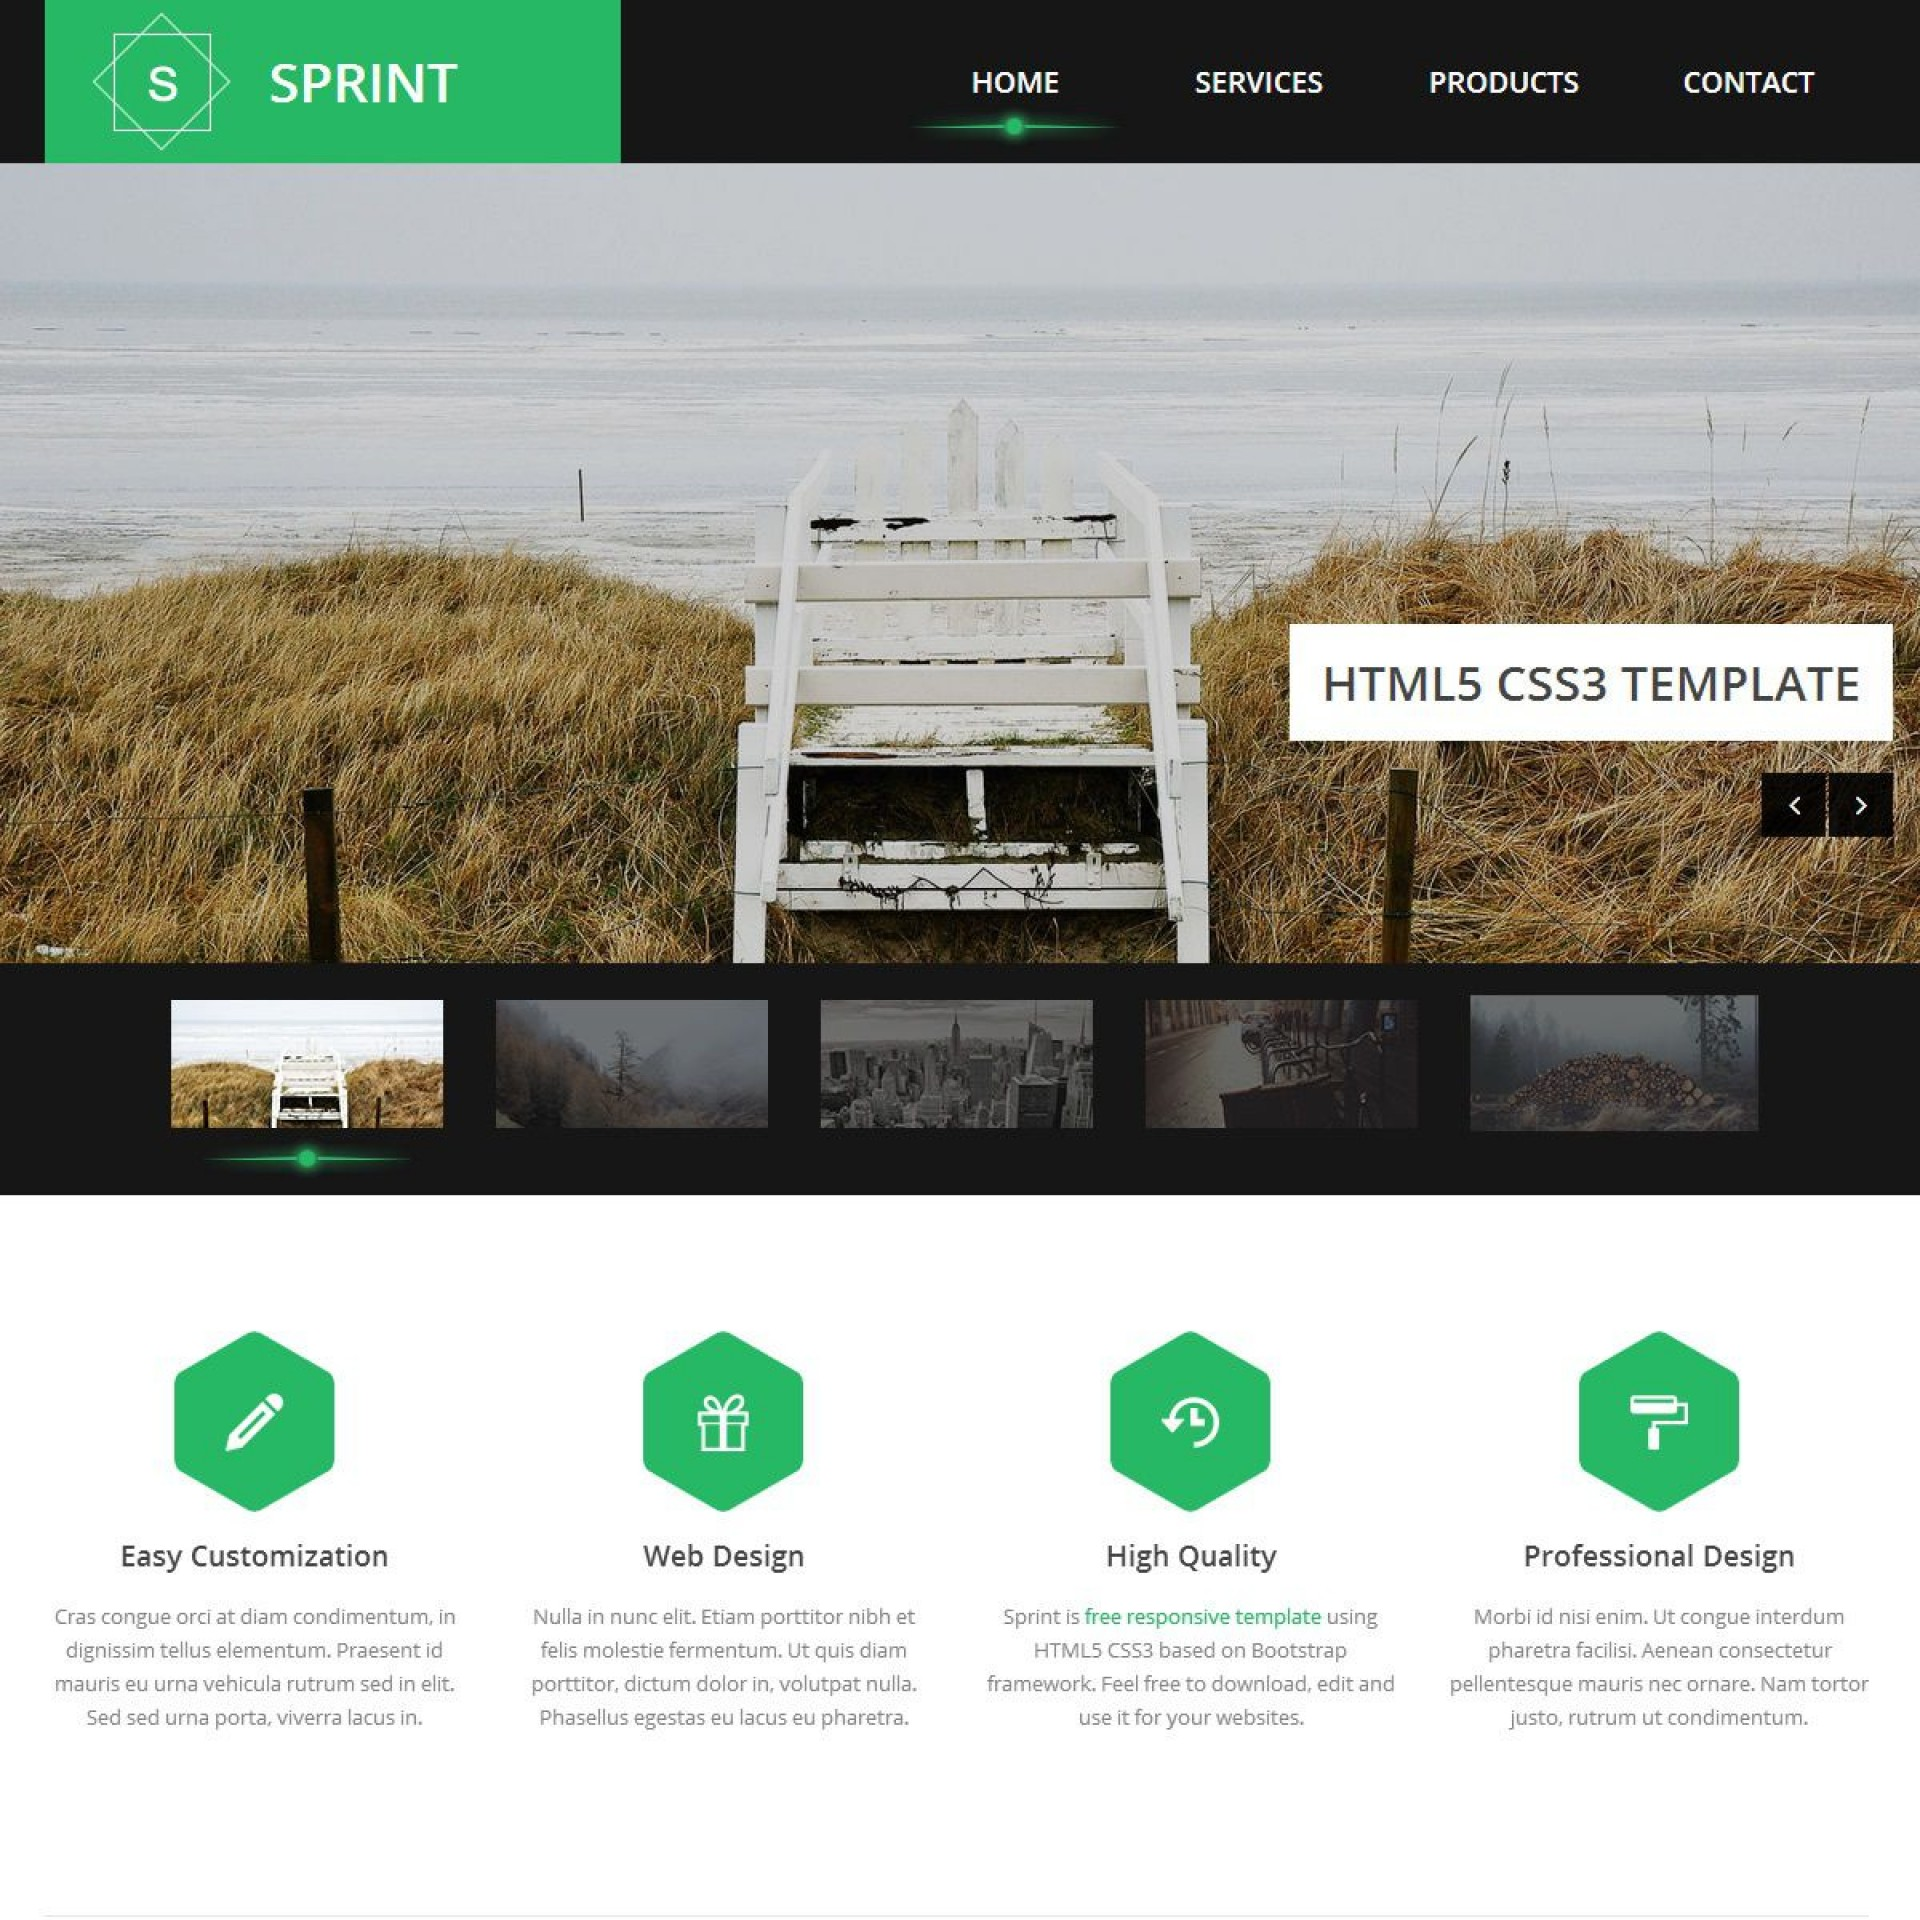 009 Remarkable Download Web Template Html5 Image  Photography Website Free Logistic Busines1920